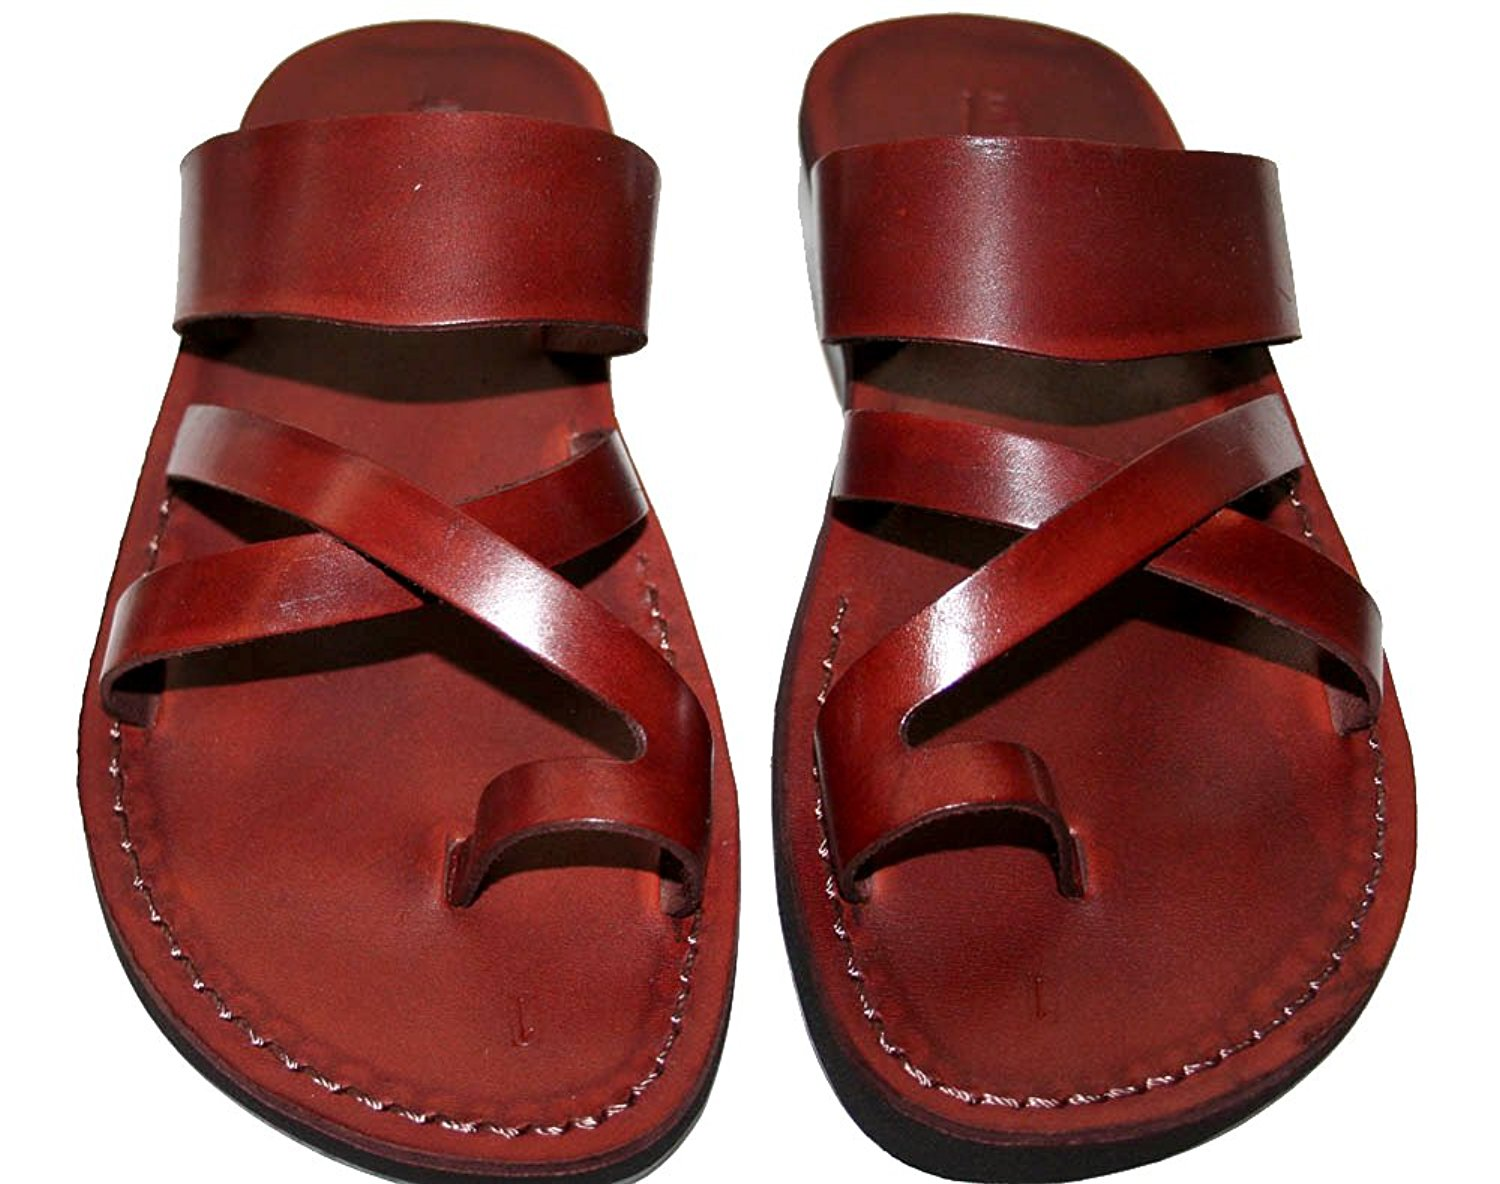 63bf83bf304ceb Get Quotations · Brown Bath Leather Sandals For Men   Women - Handmade  Unisex Sandals